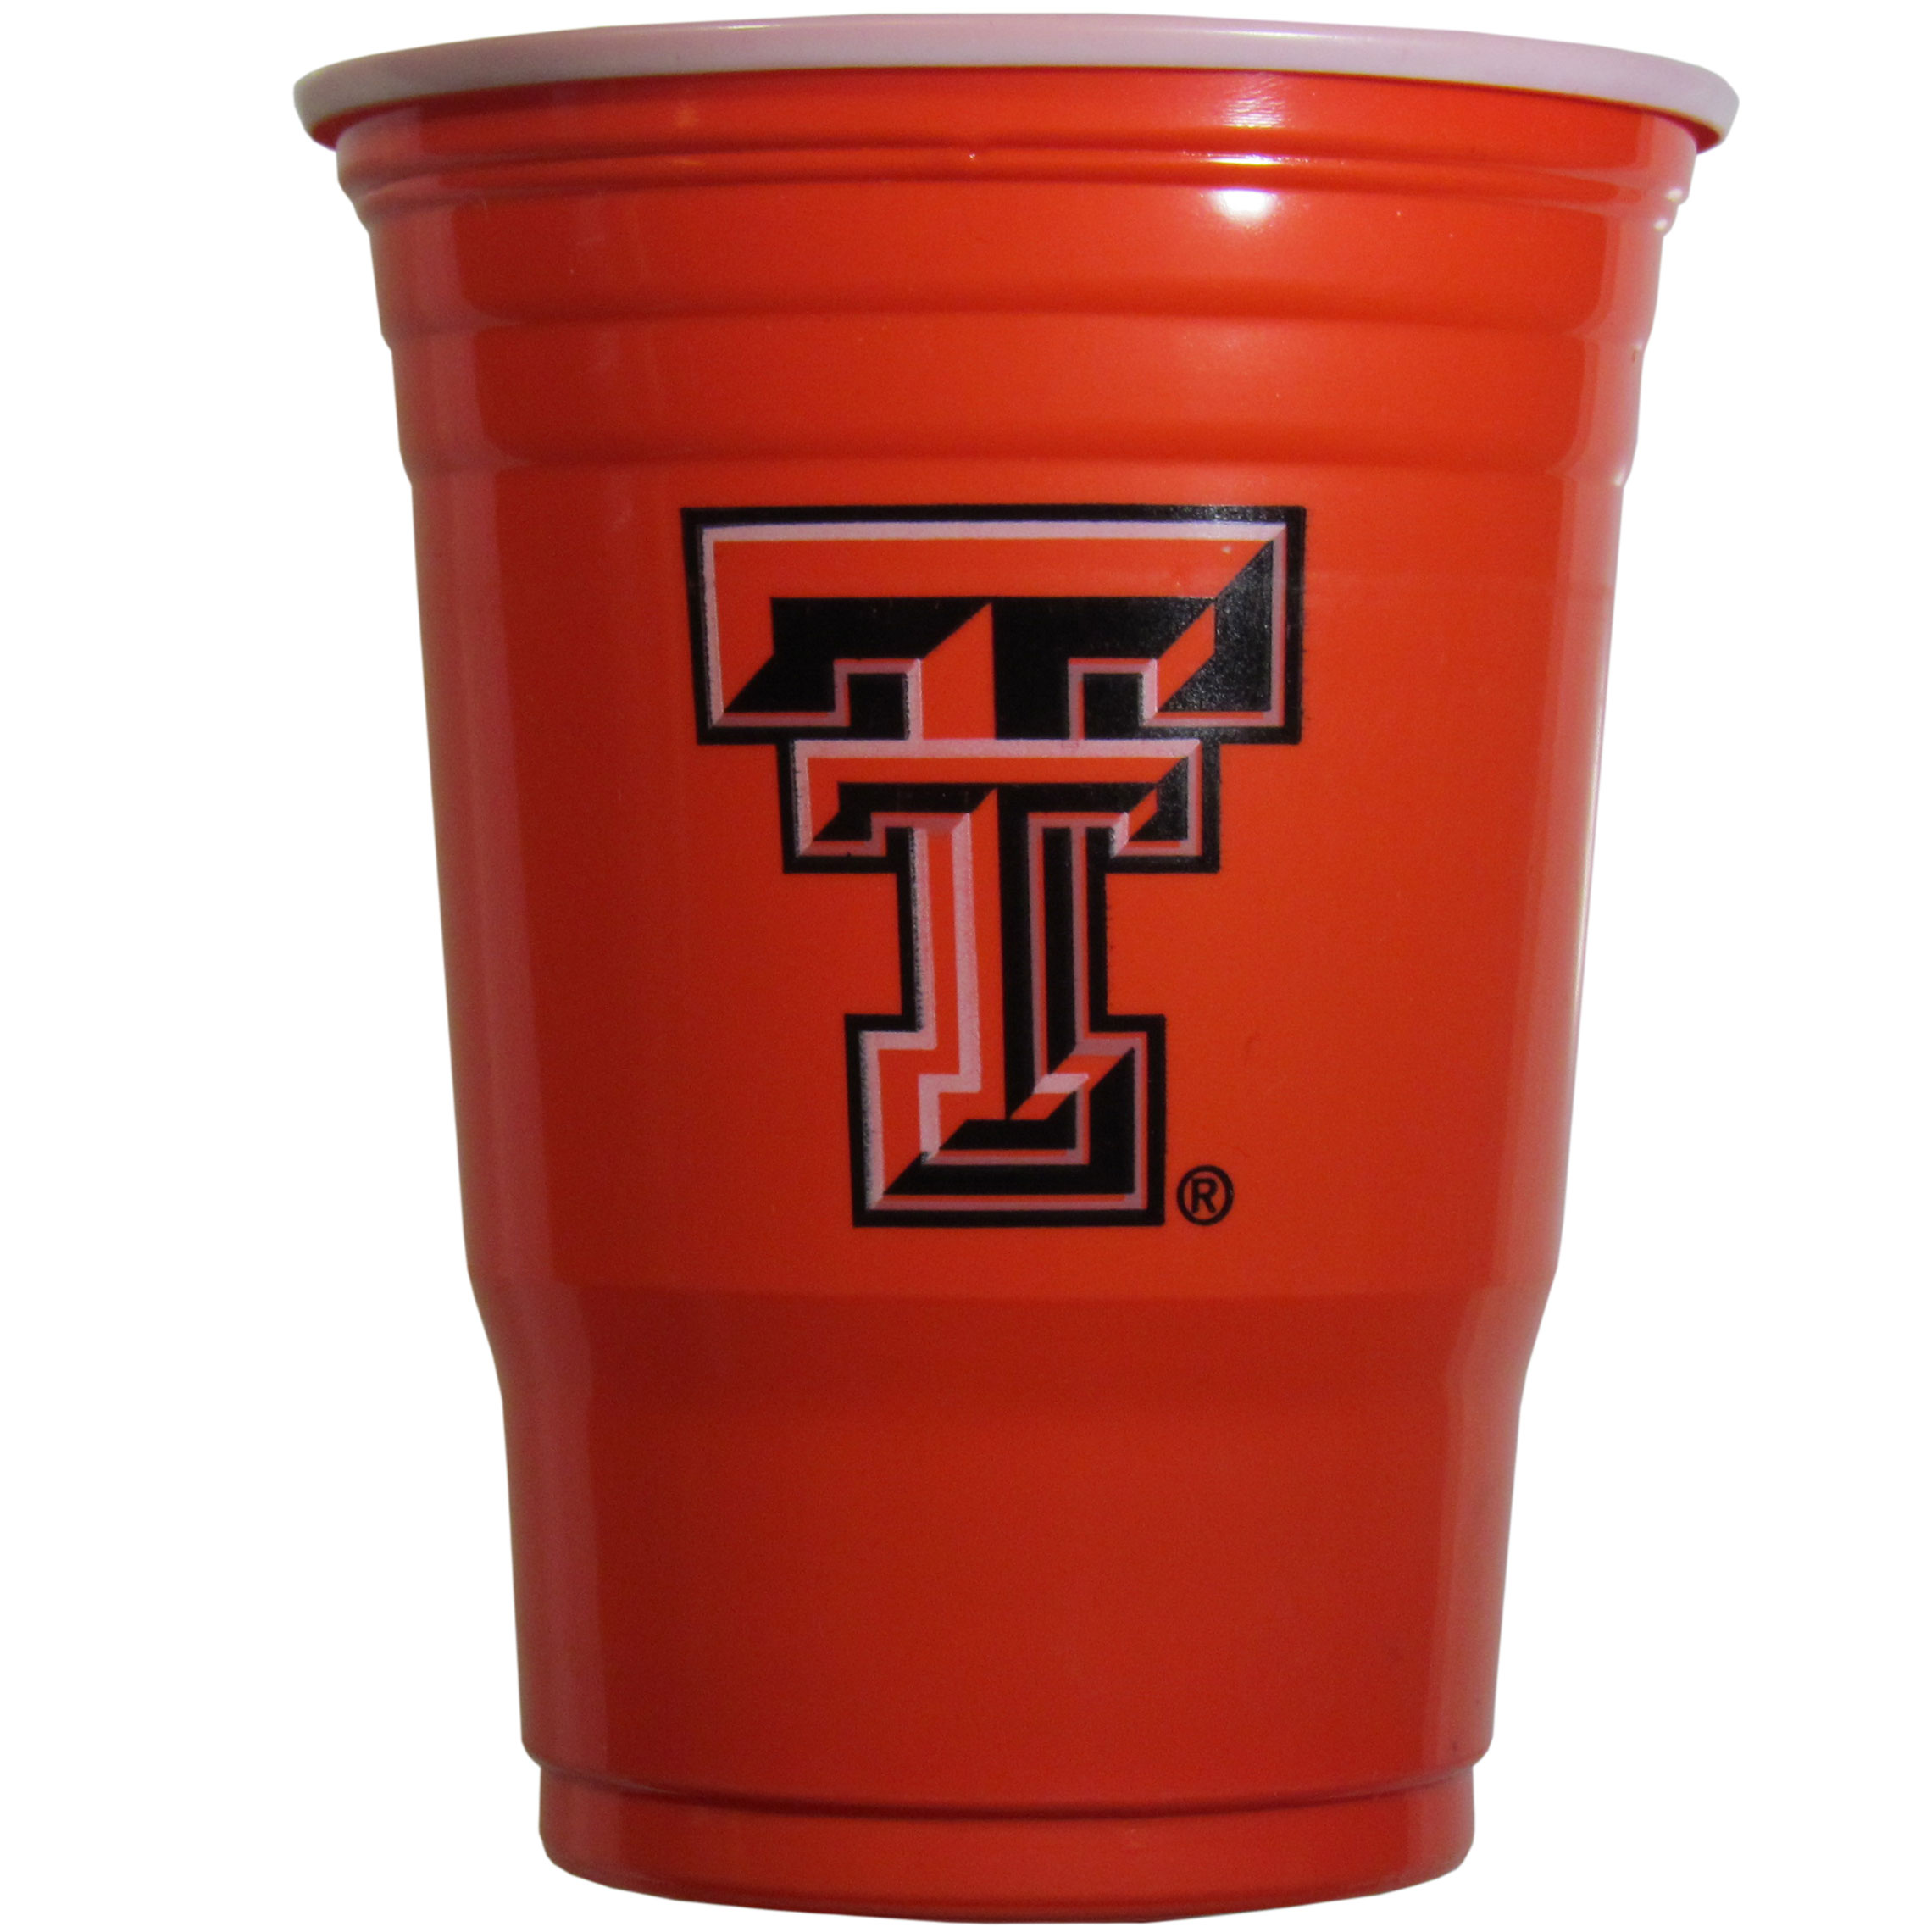 Texas Tech Raiders Plastic Game Day Cups - Our 18 ounce game day cups are what every tailgating or backyard events needs! The cups feature a big Texas Tech Raiders logo so you can show off your team pride. The popular 18 ounce size is perfect for drinks or ping pong balls! Sold in sleeves of 18 cups.